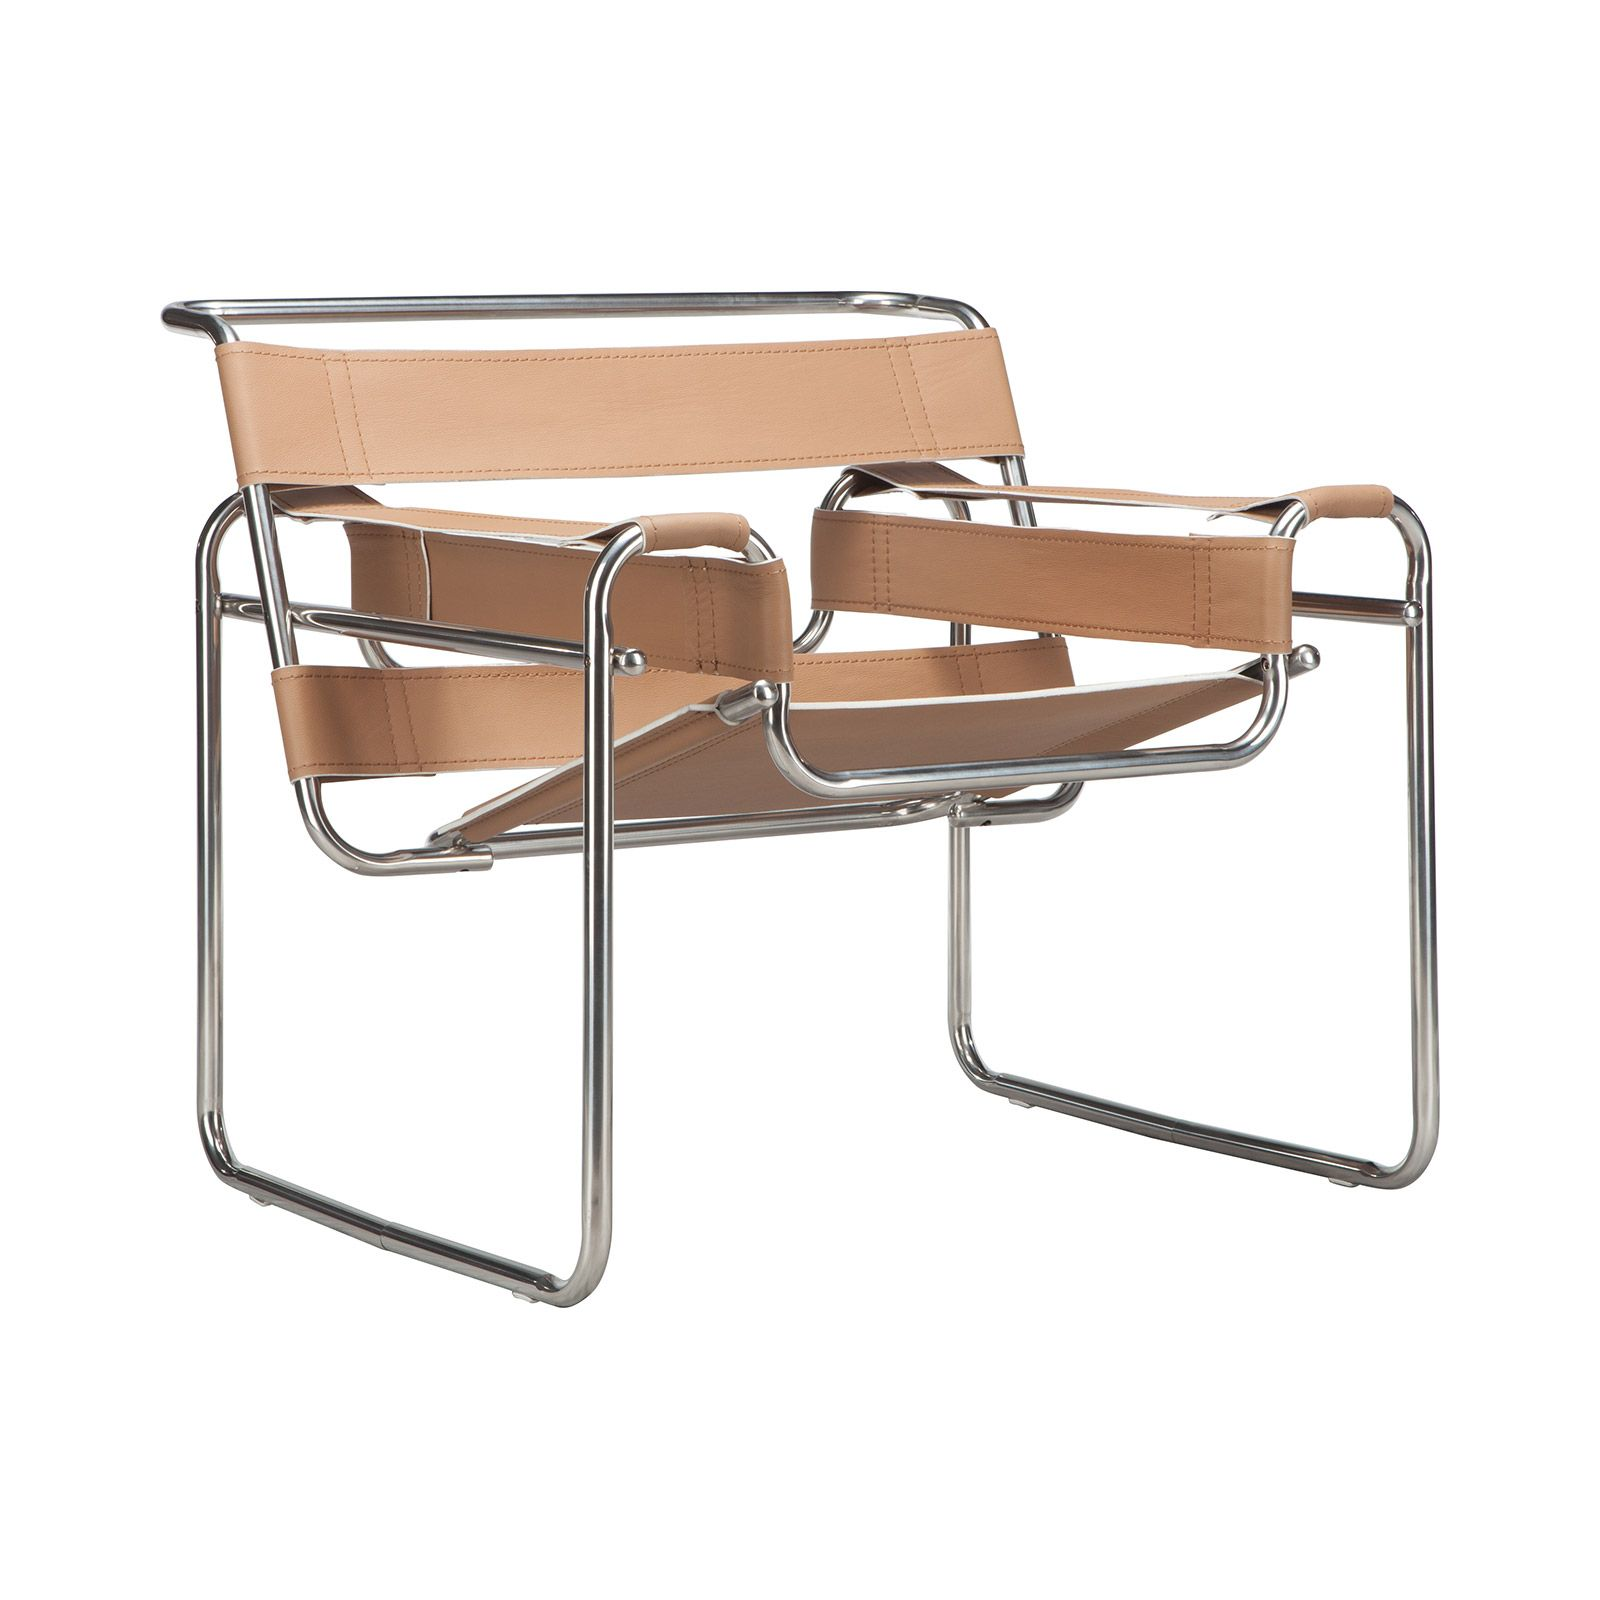 Classic mid century steel and leather chair...elegant to look at...but if you are short...you need someone to get you back out of it!  I know...I'm short! Great design though!